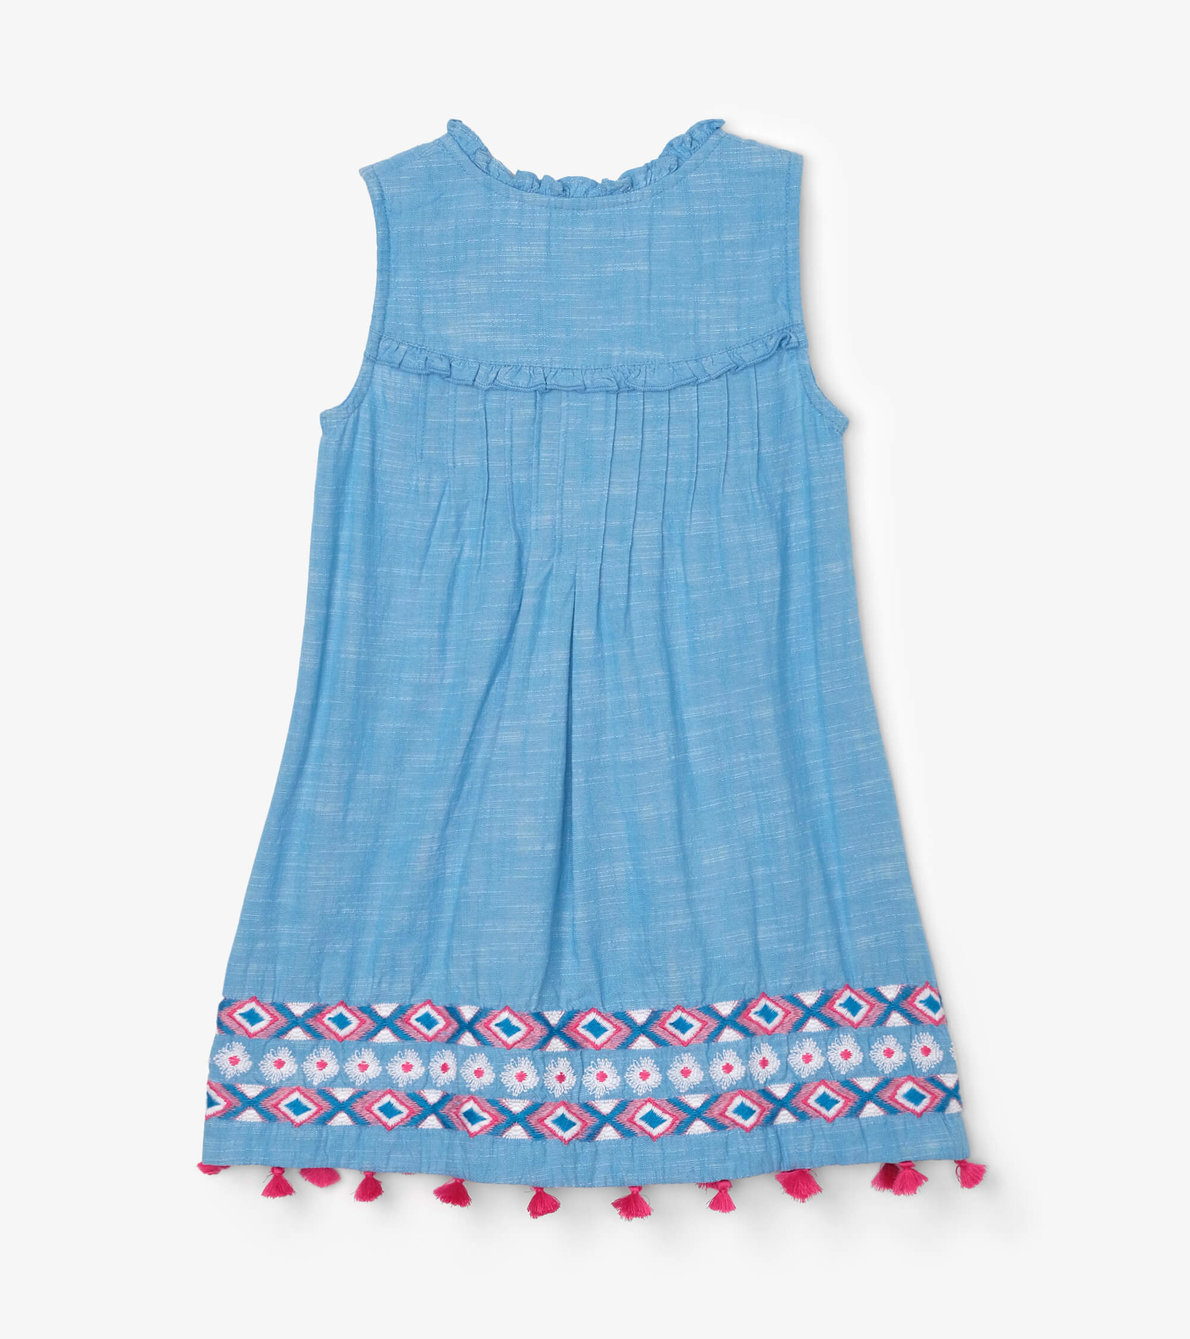 View larger image of Chambray Floral Pin Tuck Dress